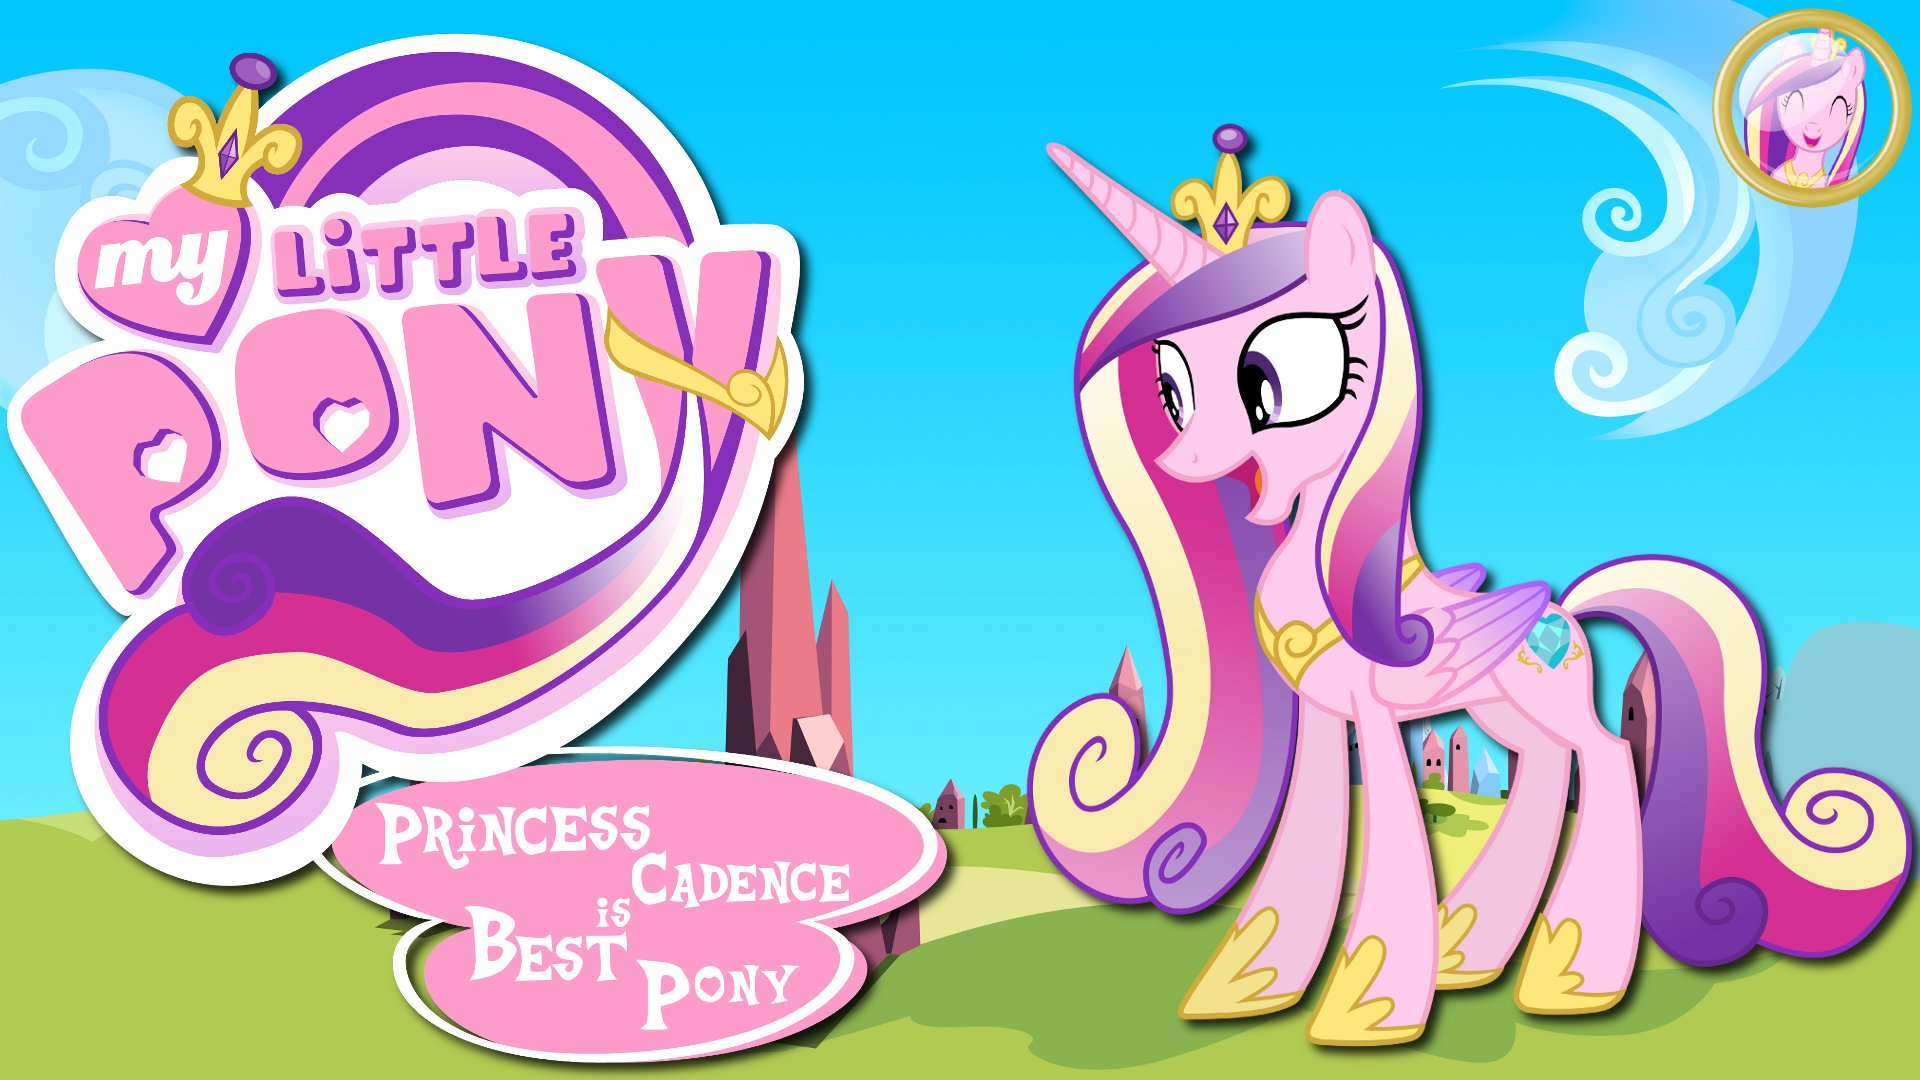 Wallpaper Princess Candance is best pony by 90Sigma, Barrfind and jamescorck